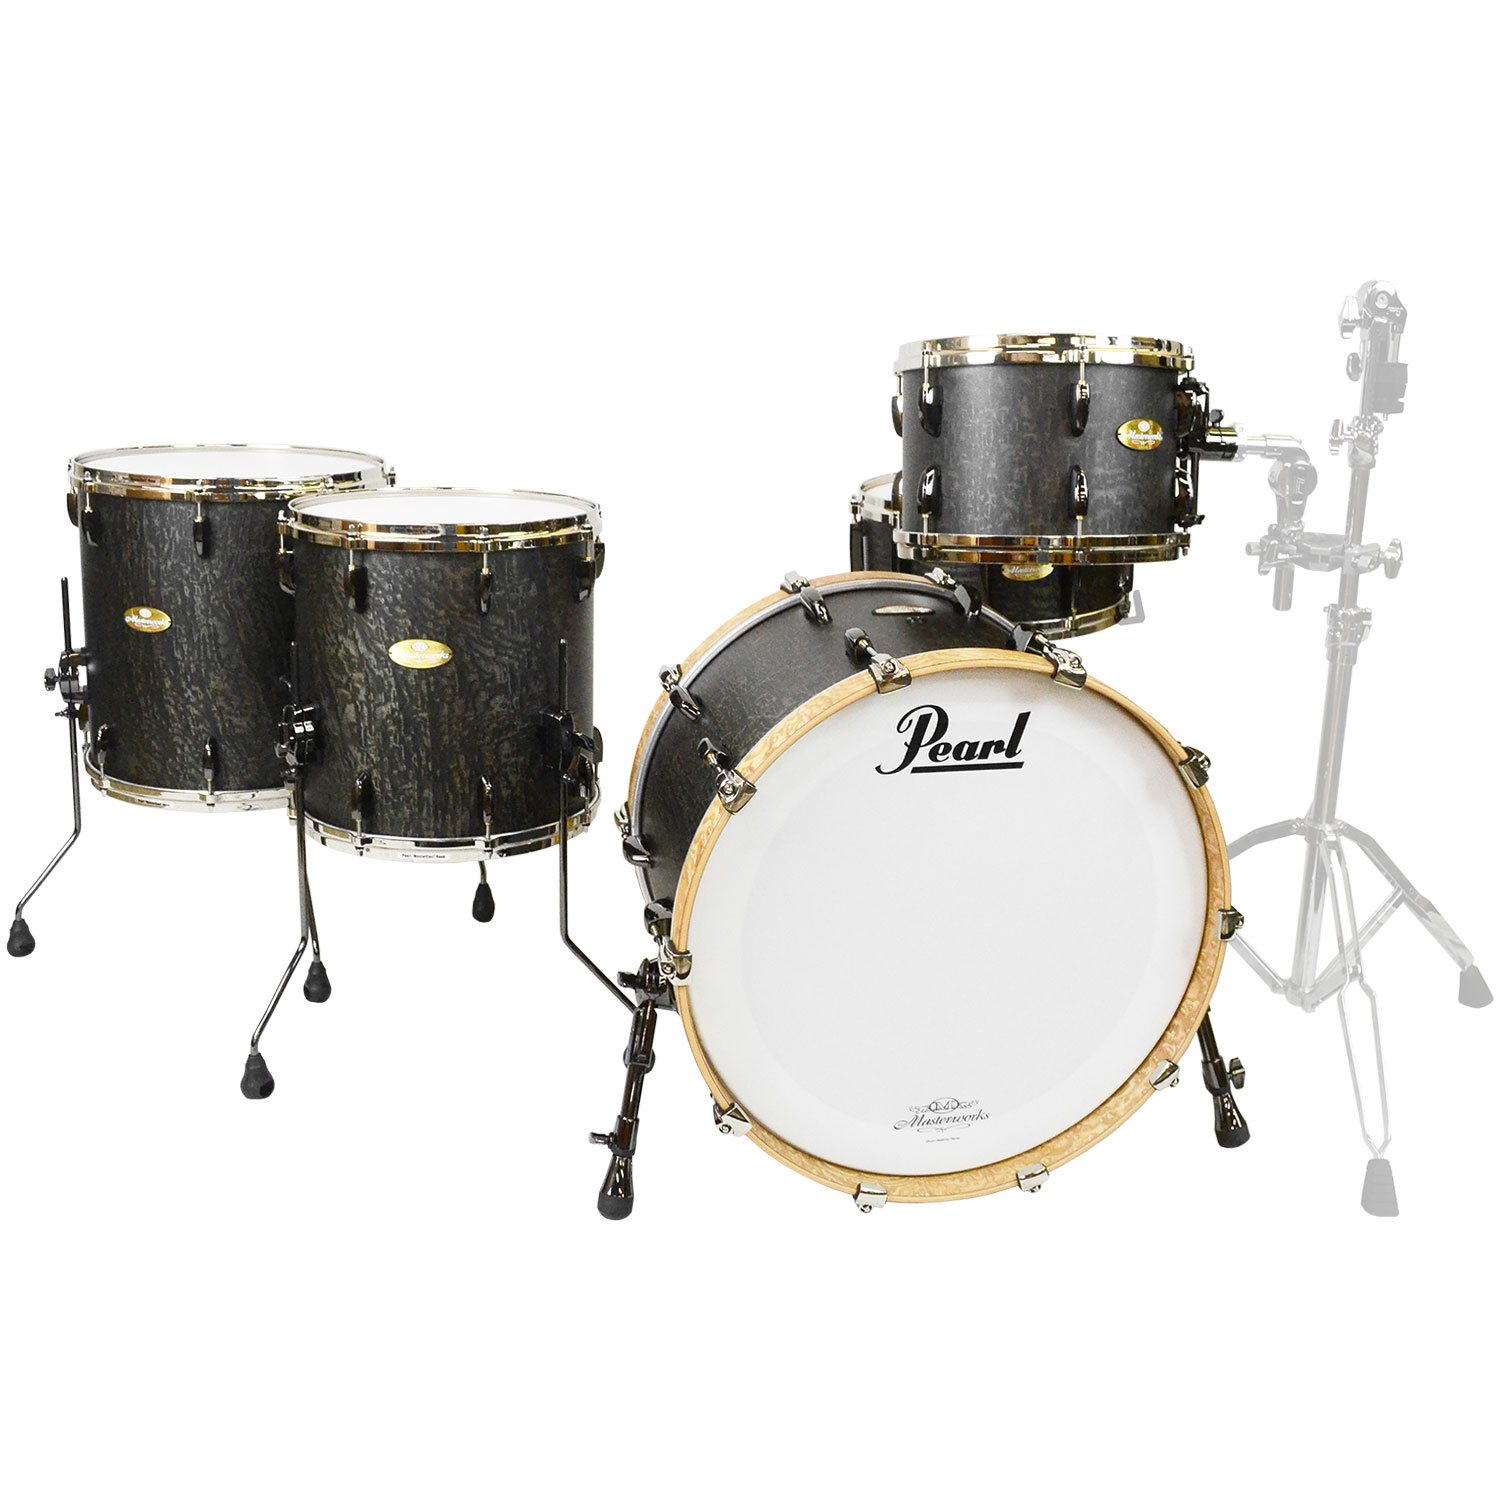 "Pearl Masterworks Sonic Select 5-Piece Studio Shell Pack (14"" Snare, 12-14-16"" Toms, 22"" Bass) in Matte Light Twilight over Tamo"